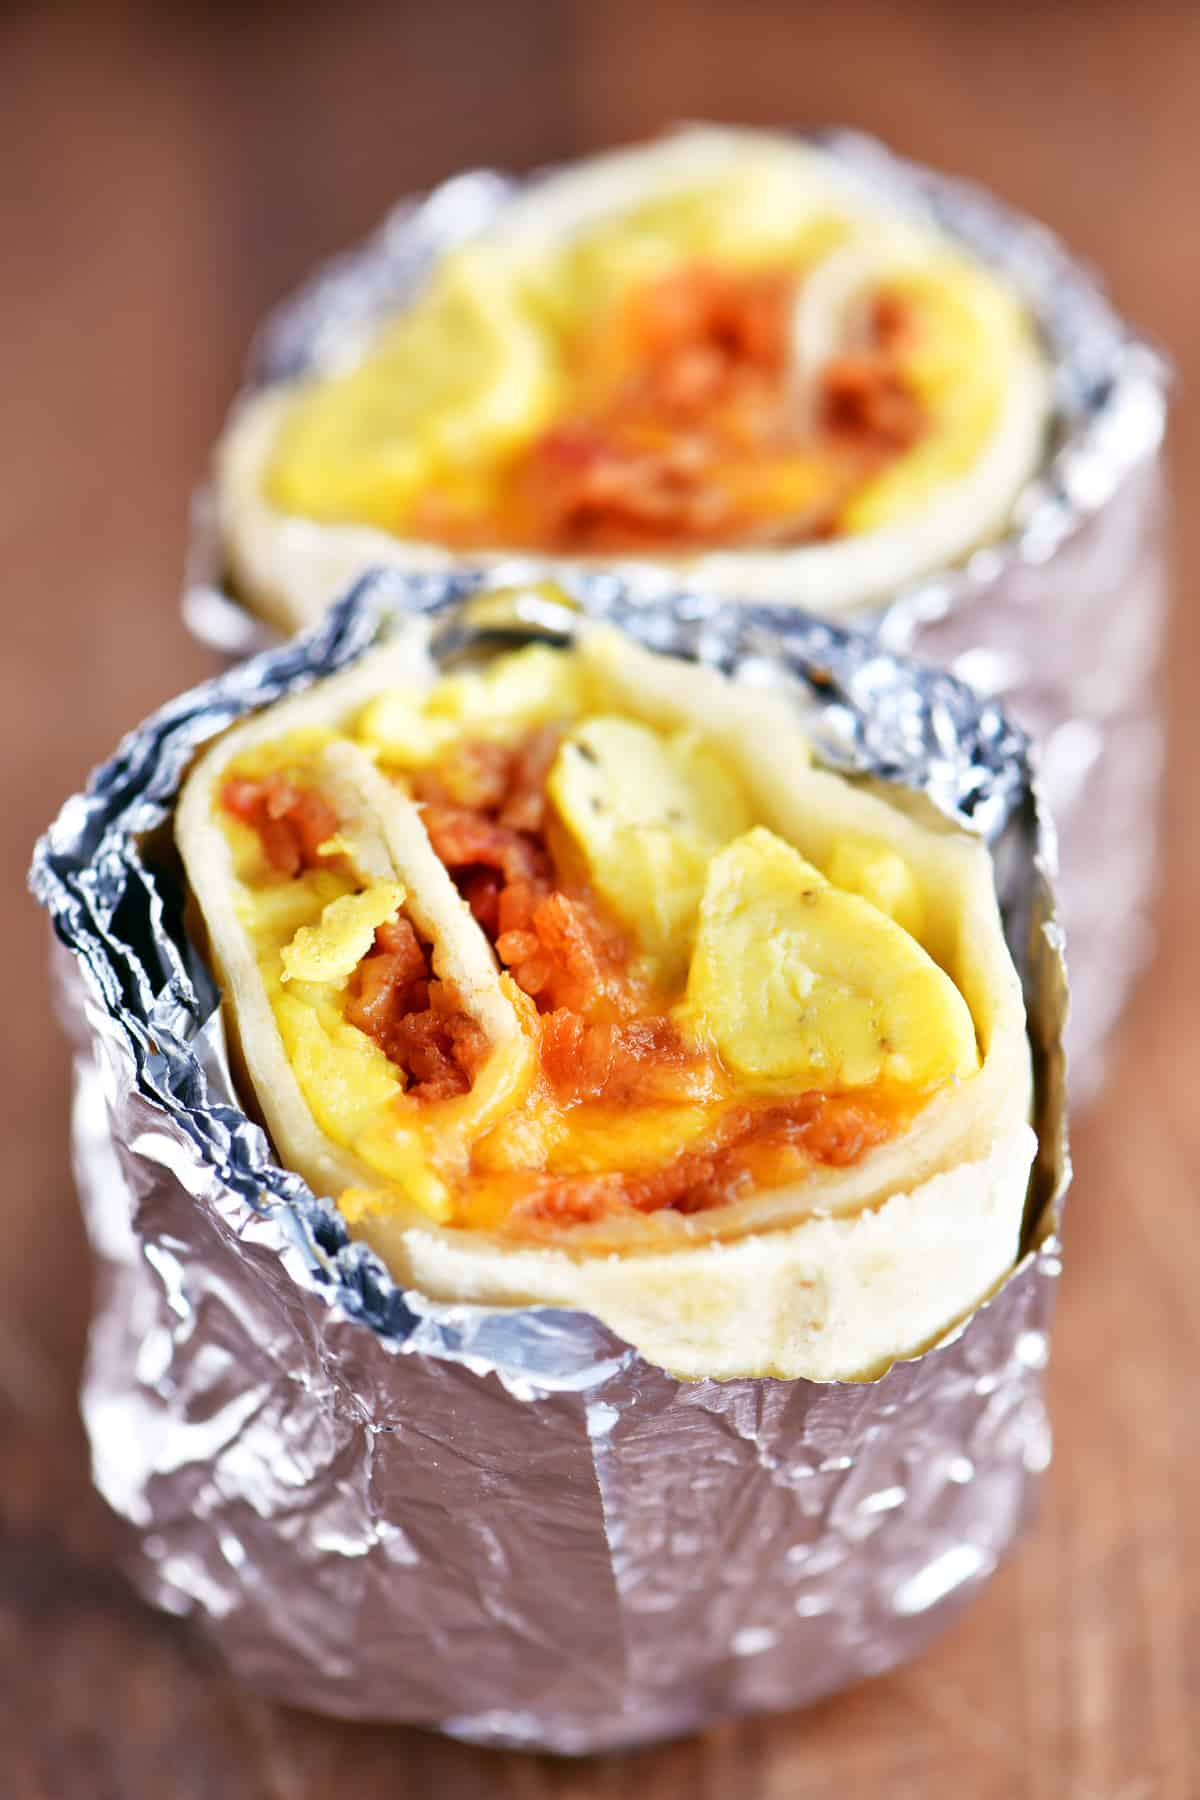 foil wrapped bacon egg and cheese breakfast burrito halved